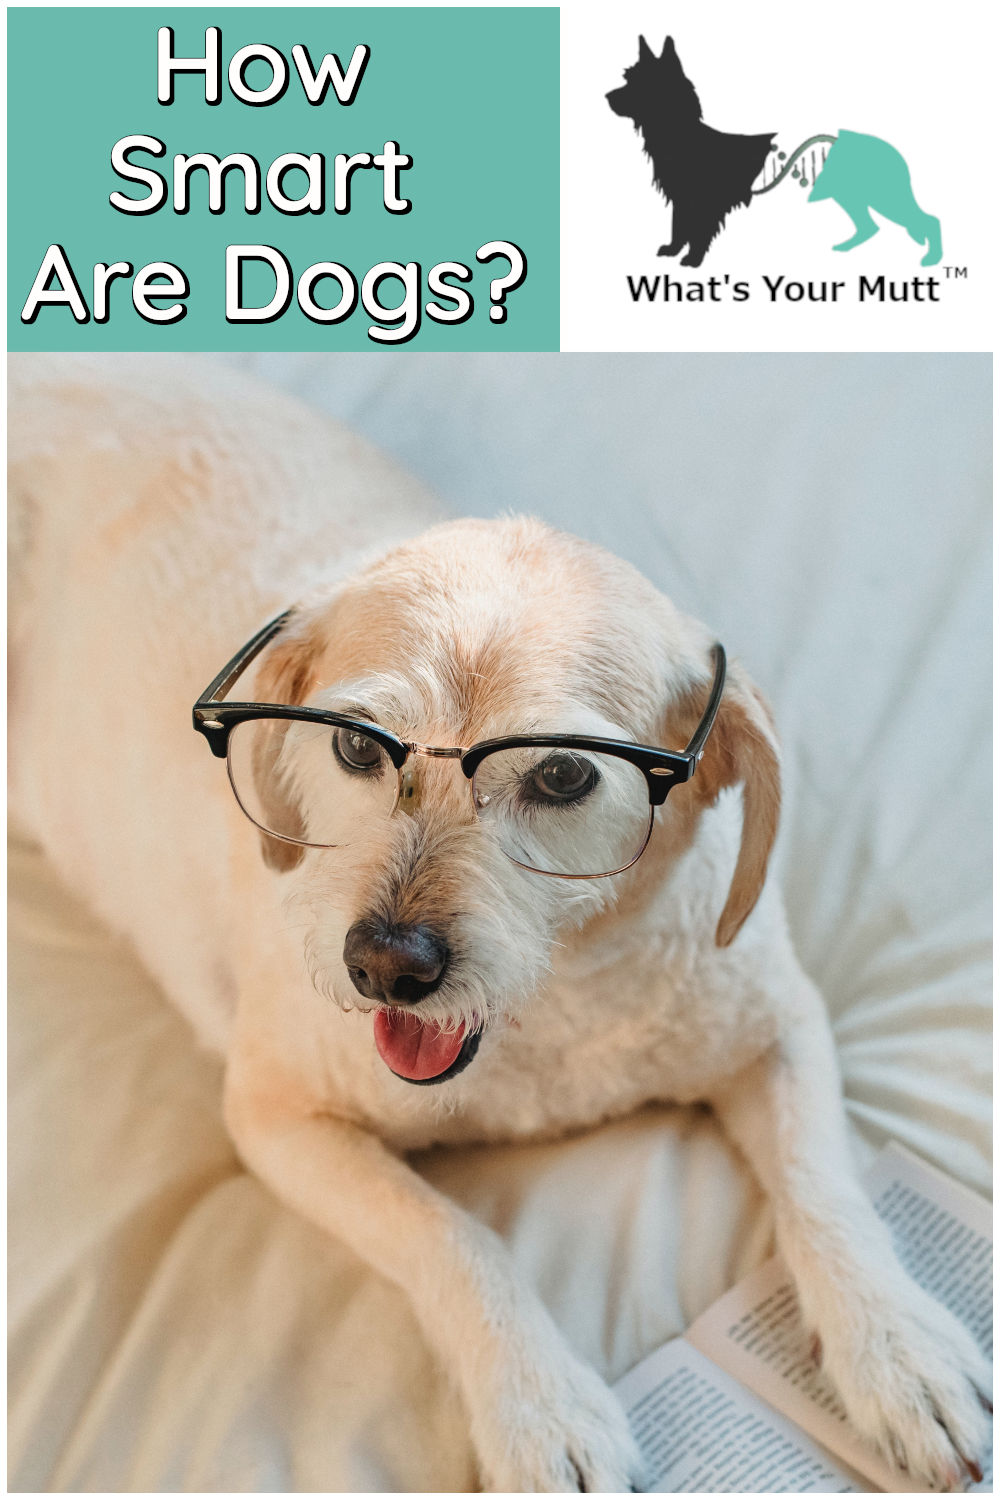 What's Your Mutt DNA how smart are dogs